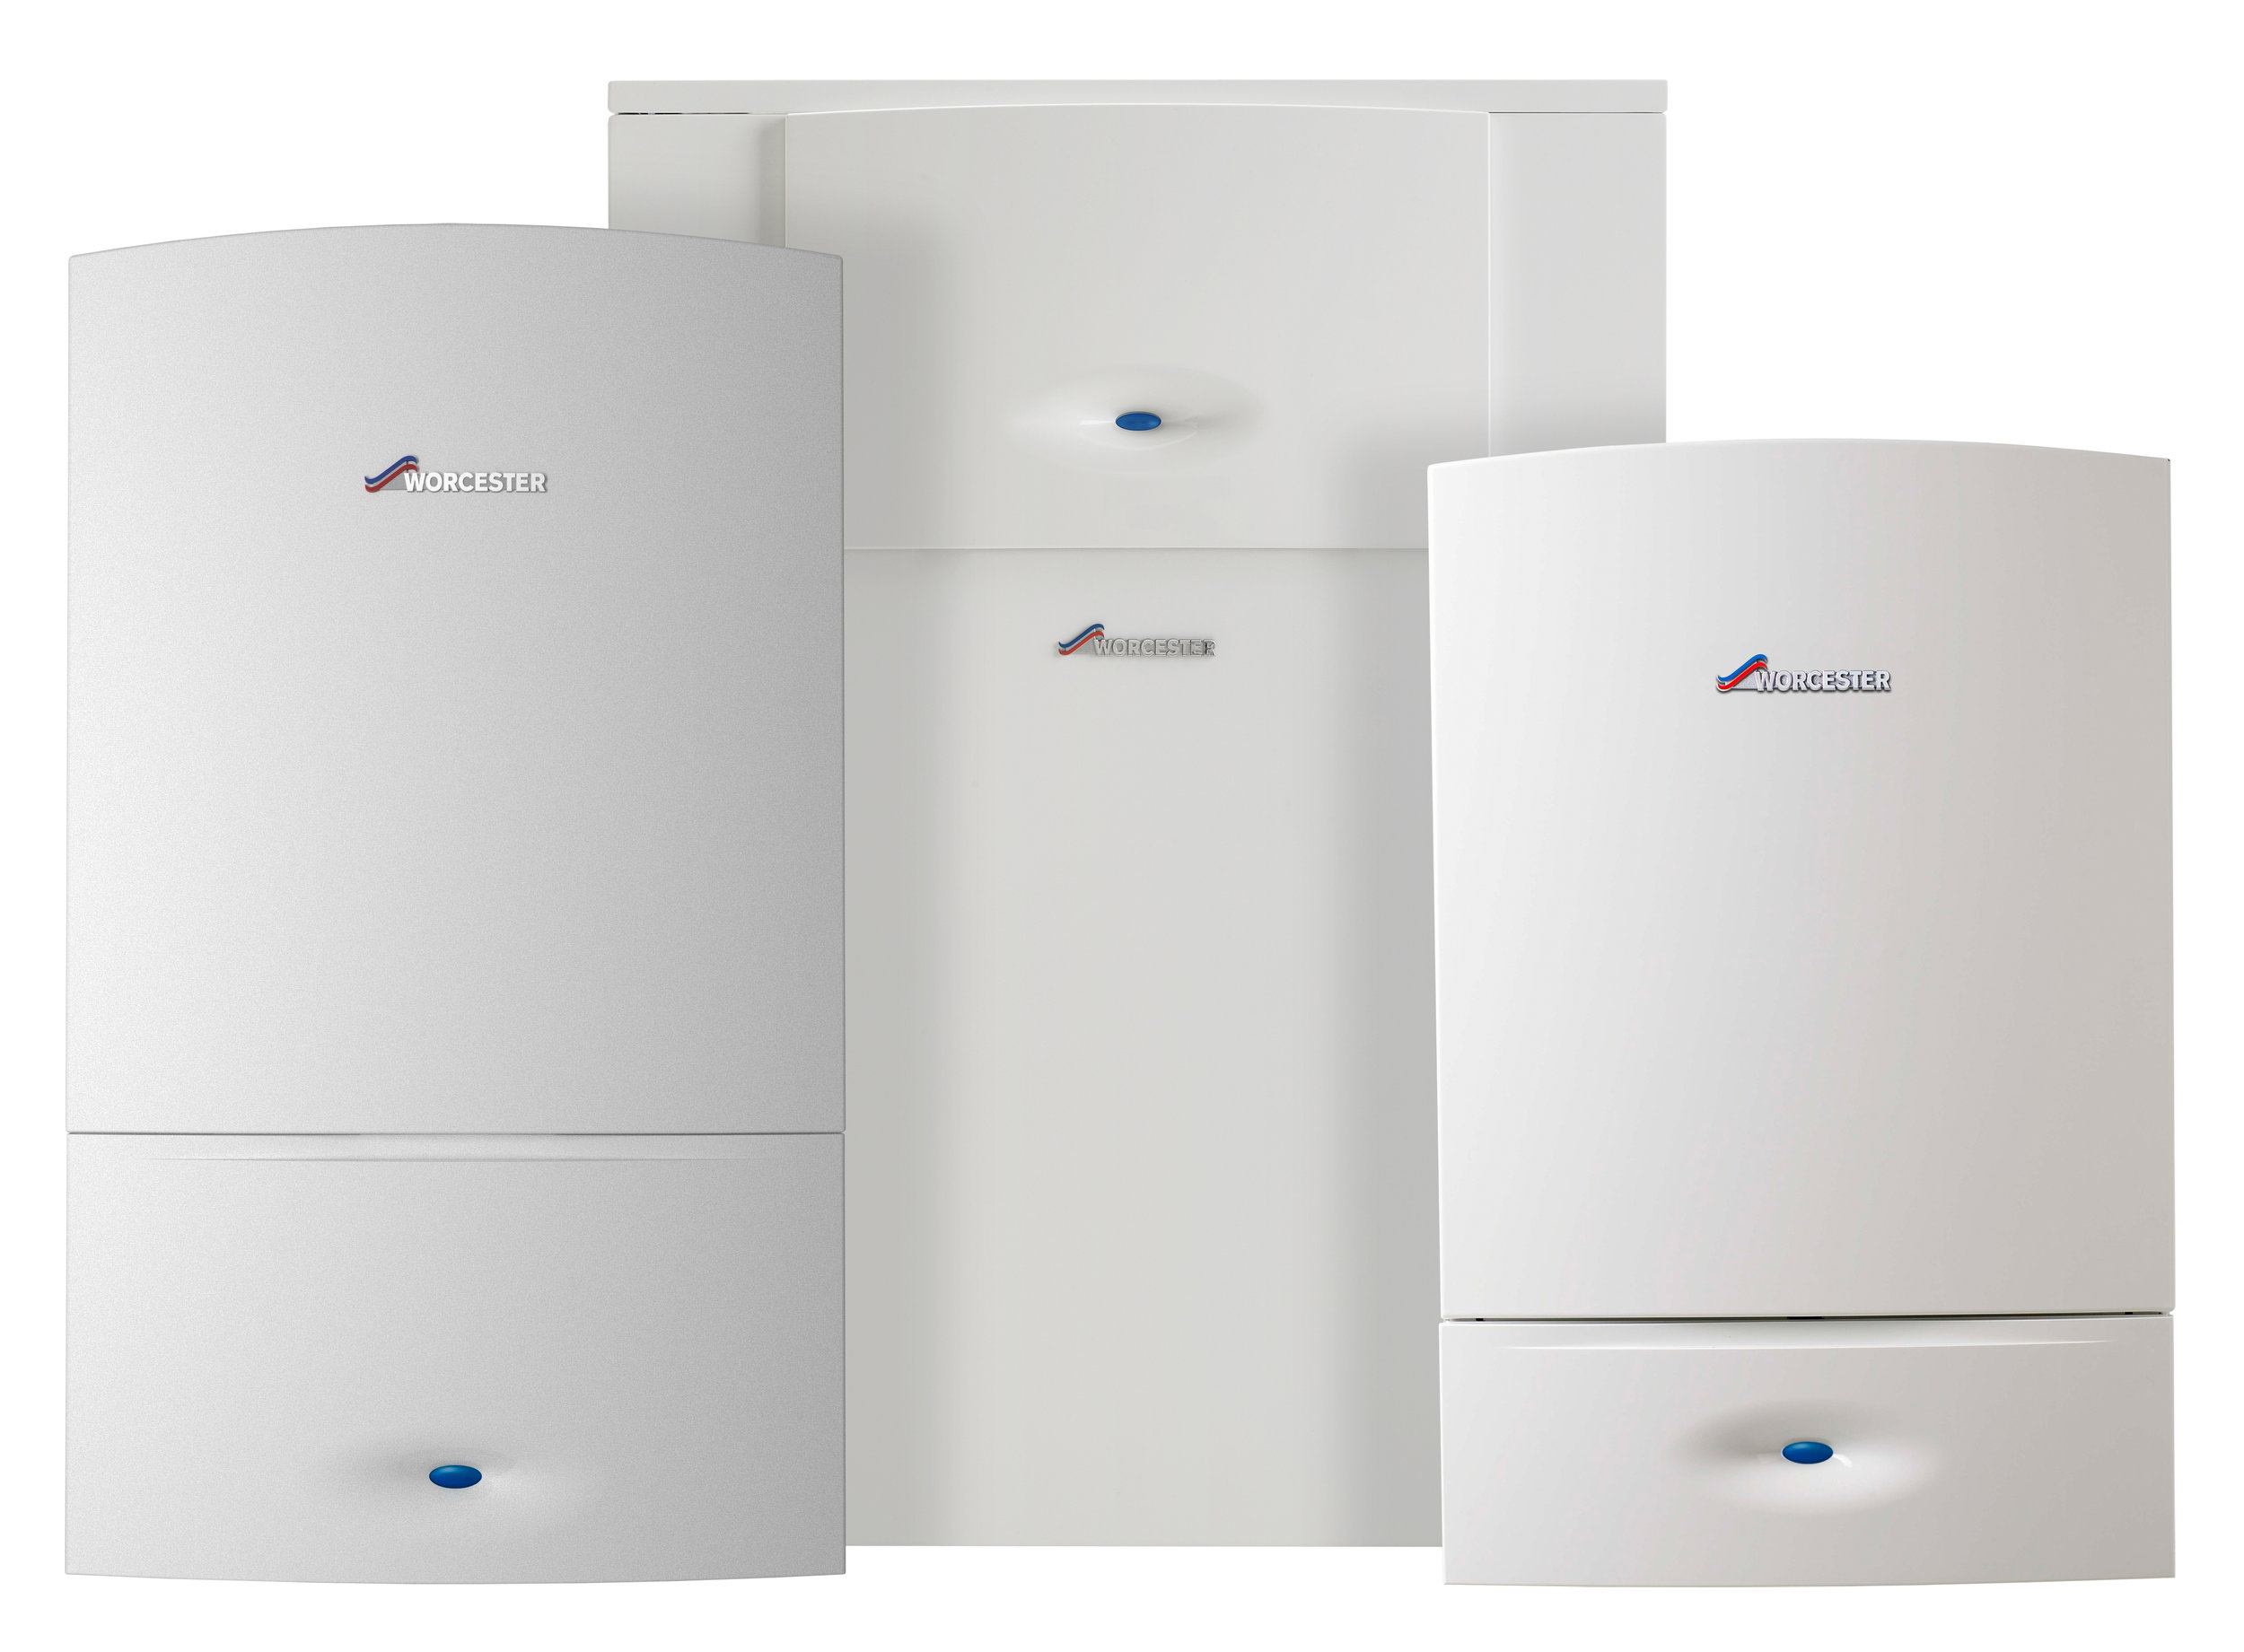 Local-Accredited-Trusted - We are your local family run boiler expertsDiamond Level Worcester Bosch Accredited Installers5 Star rated on Trustpilot, Which Trusted Traders, Checkatrade, Google and Facebook.Gas Services based in Glen Parva